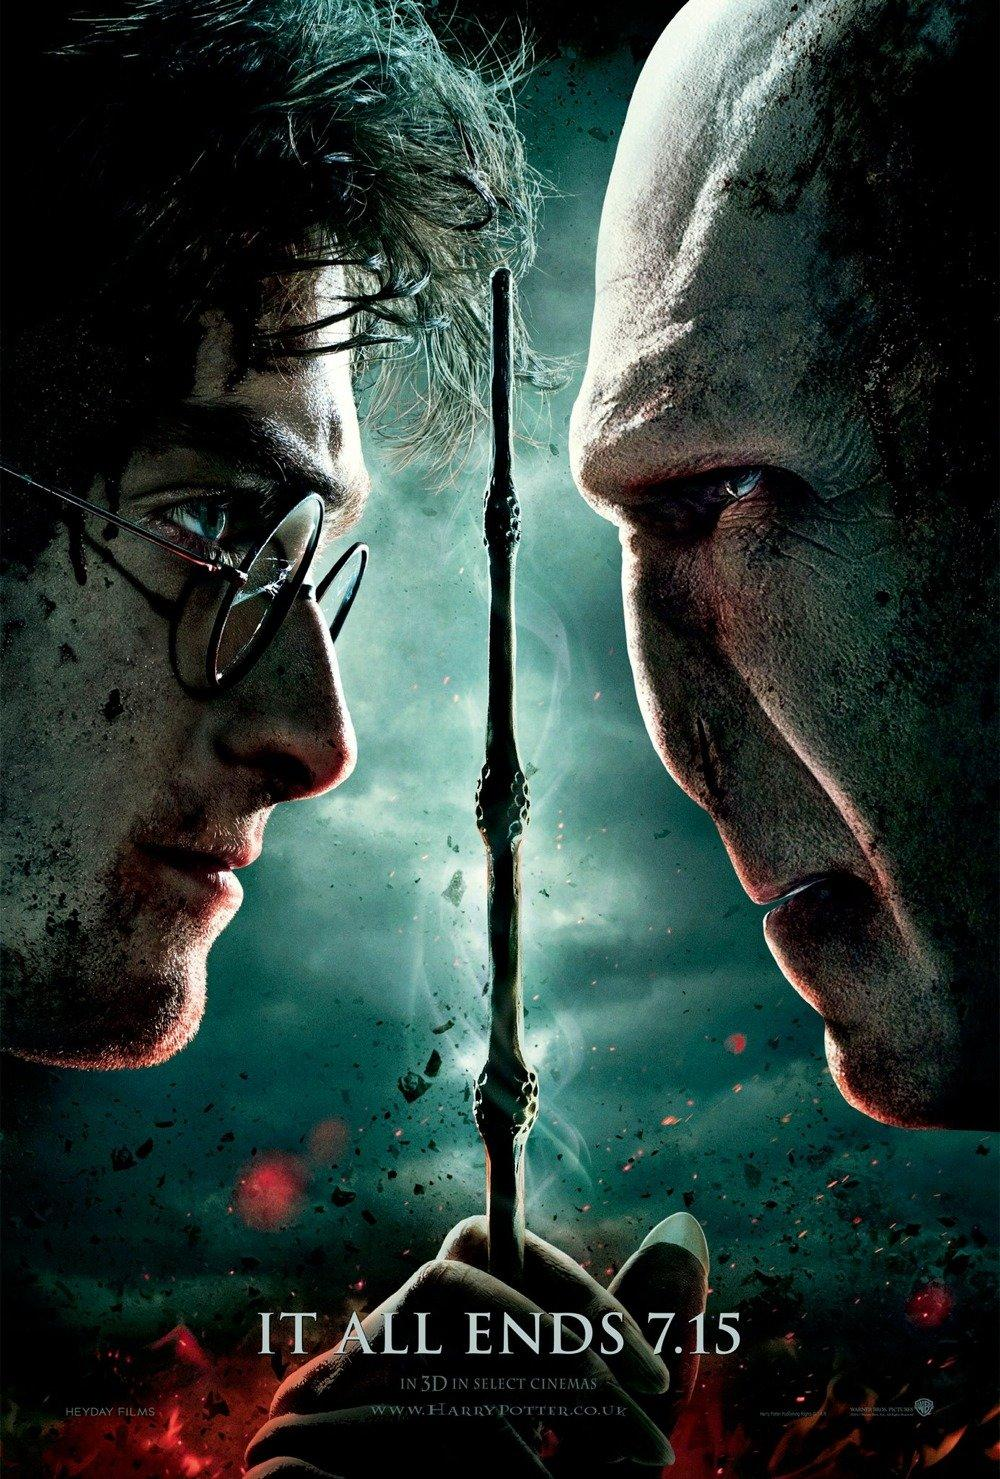 Harry Potter et les Reliques de la Mort: Partie 2: Extra Large Image Movie Poster - Internet Movie Poster Gallery Prix